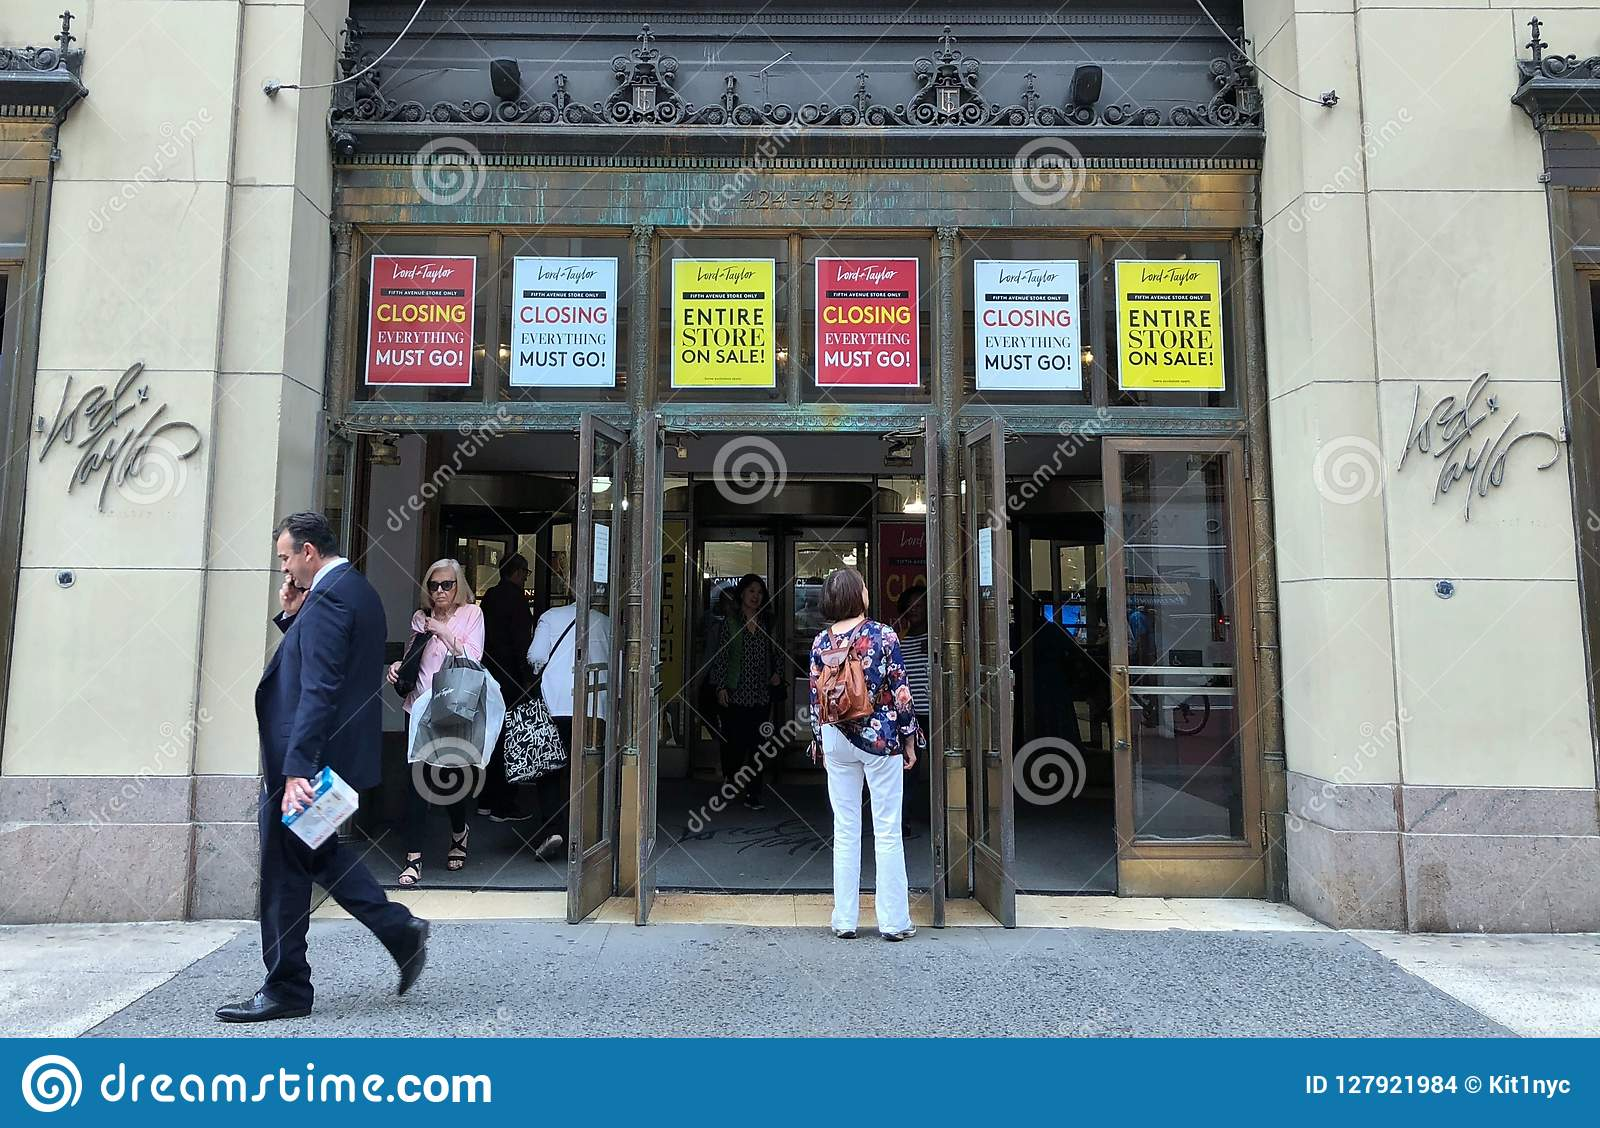 3ec46a4dba4c2 Lord and Taylor New York Flagship Store Sale and Store Closing Liquidation